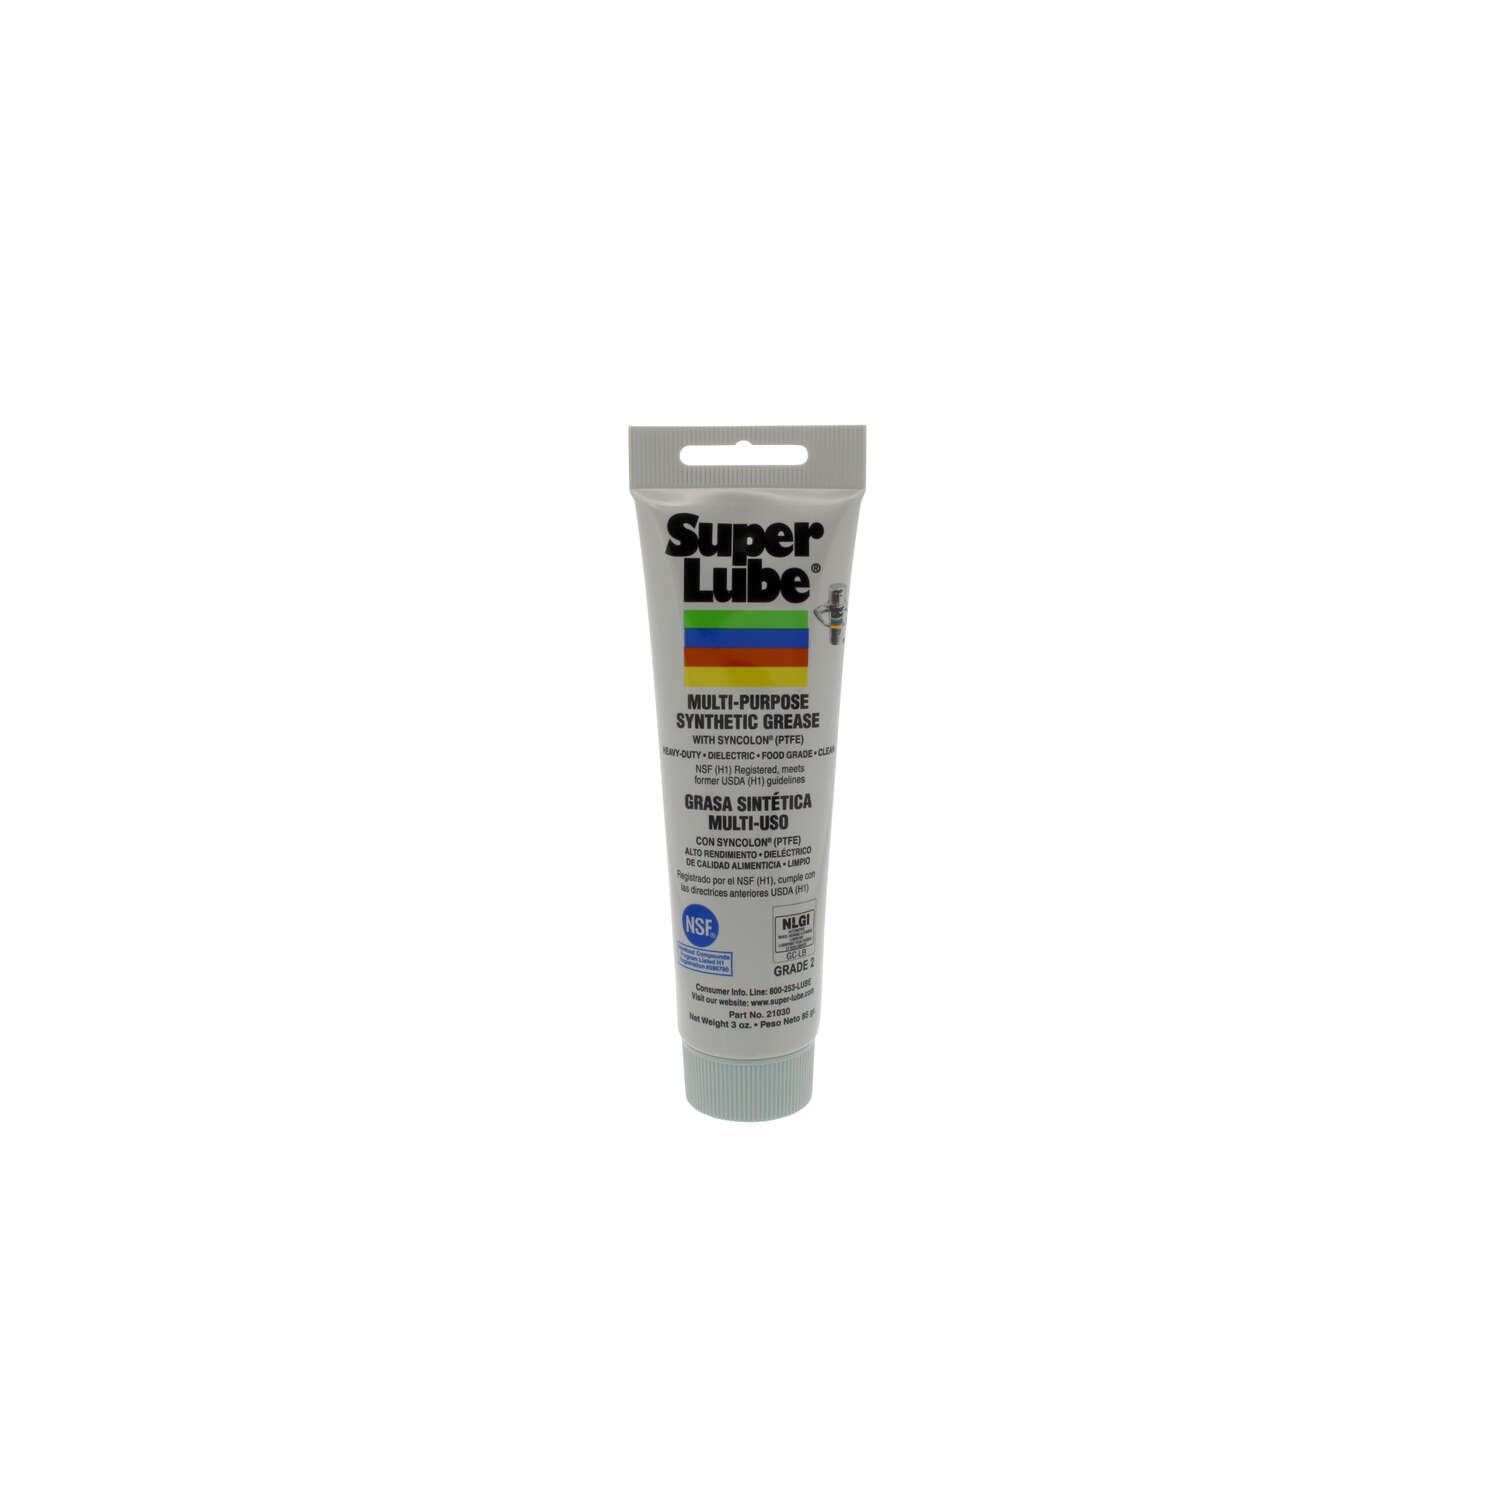 Super Lube Synthetic Grease 3 oz.